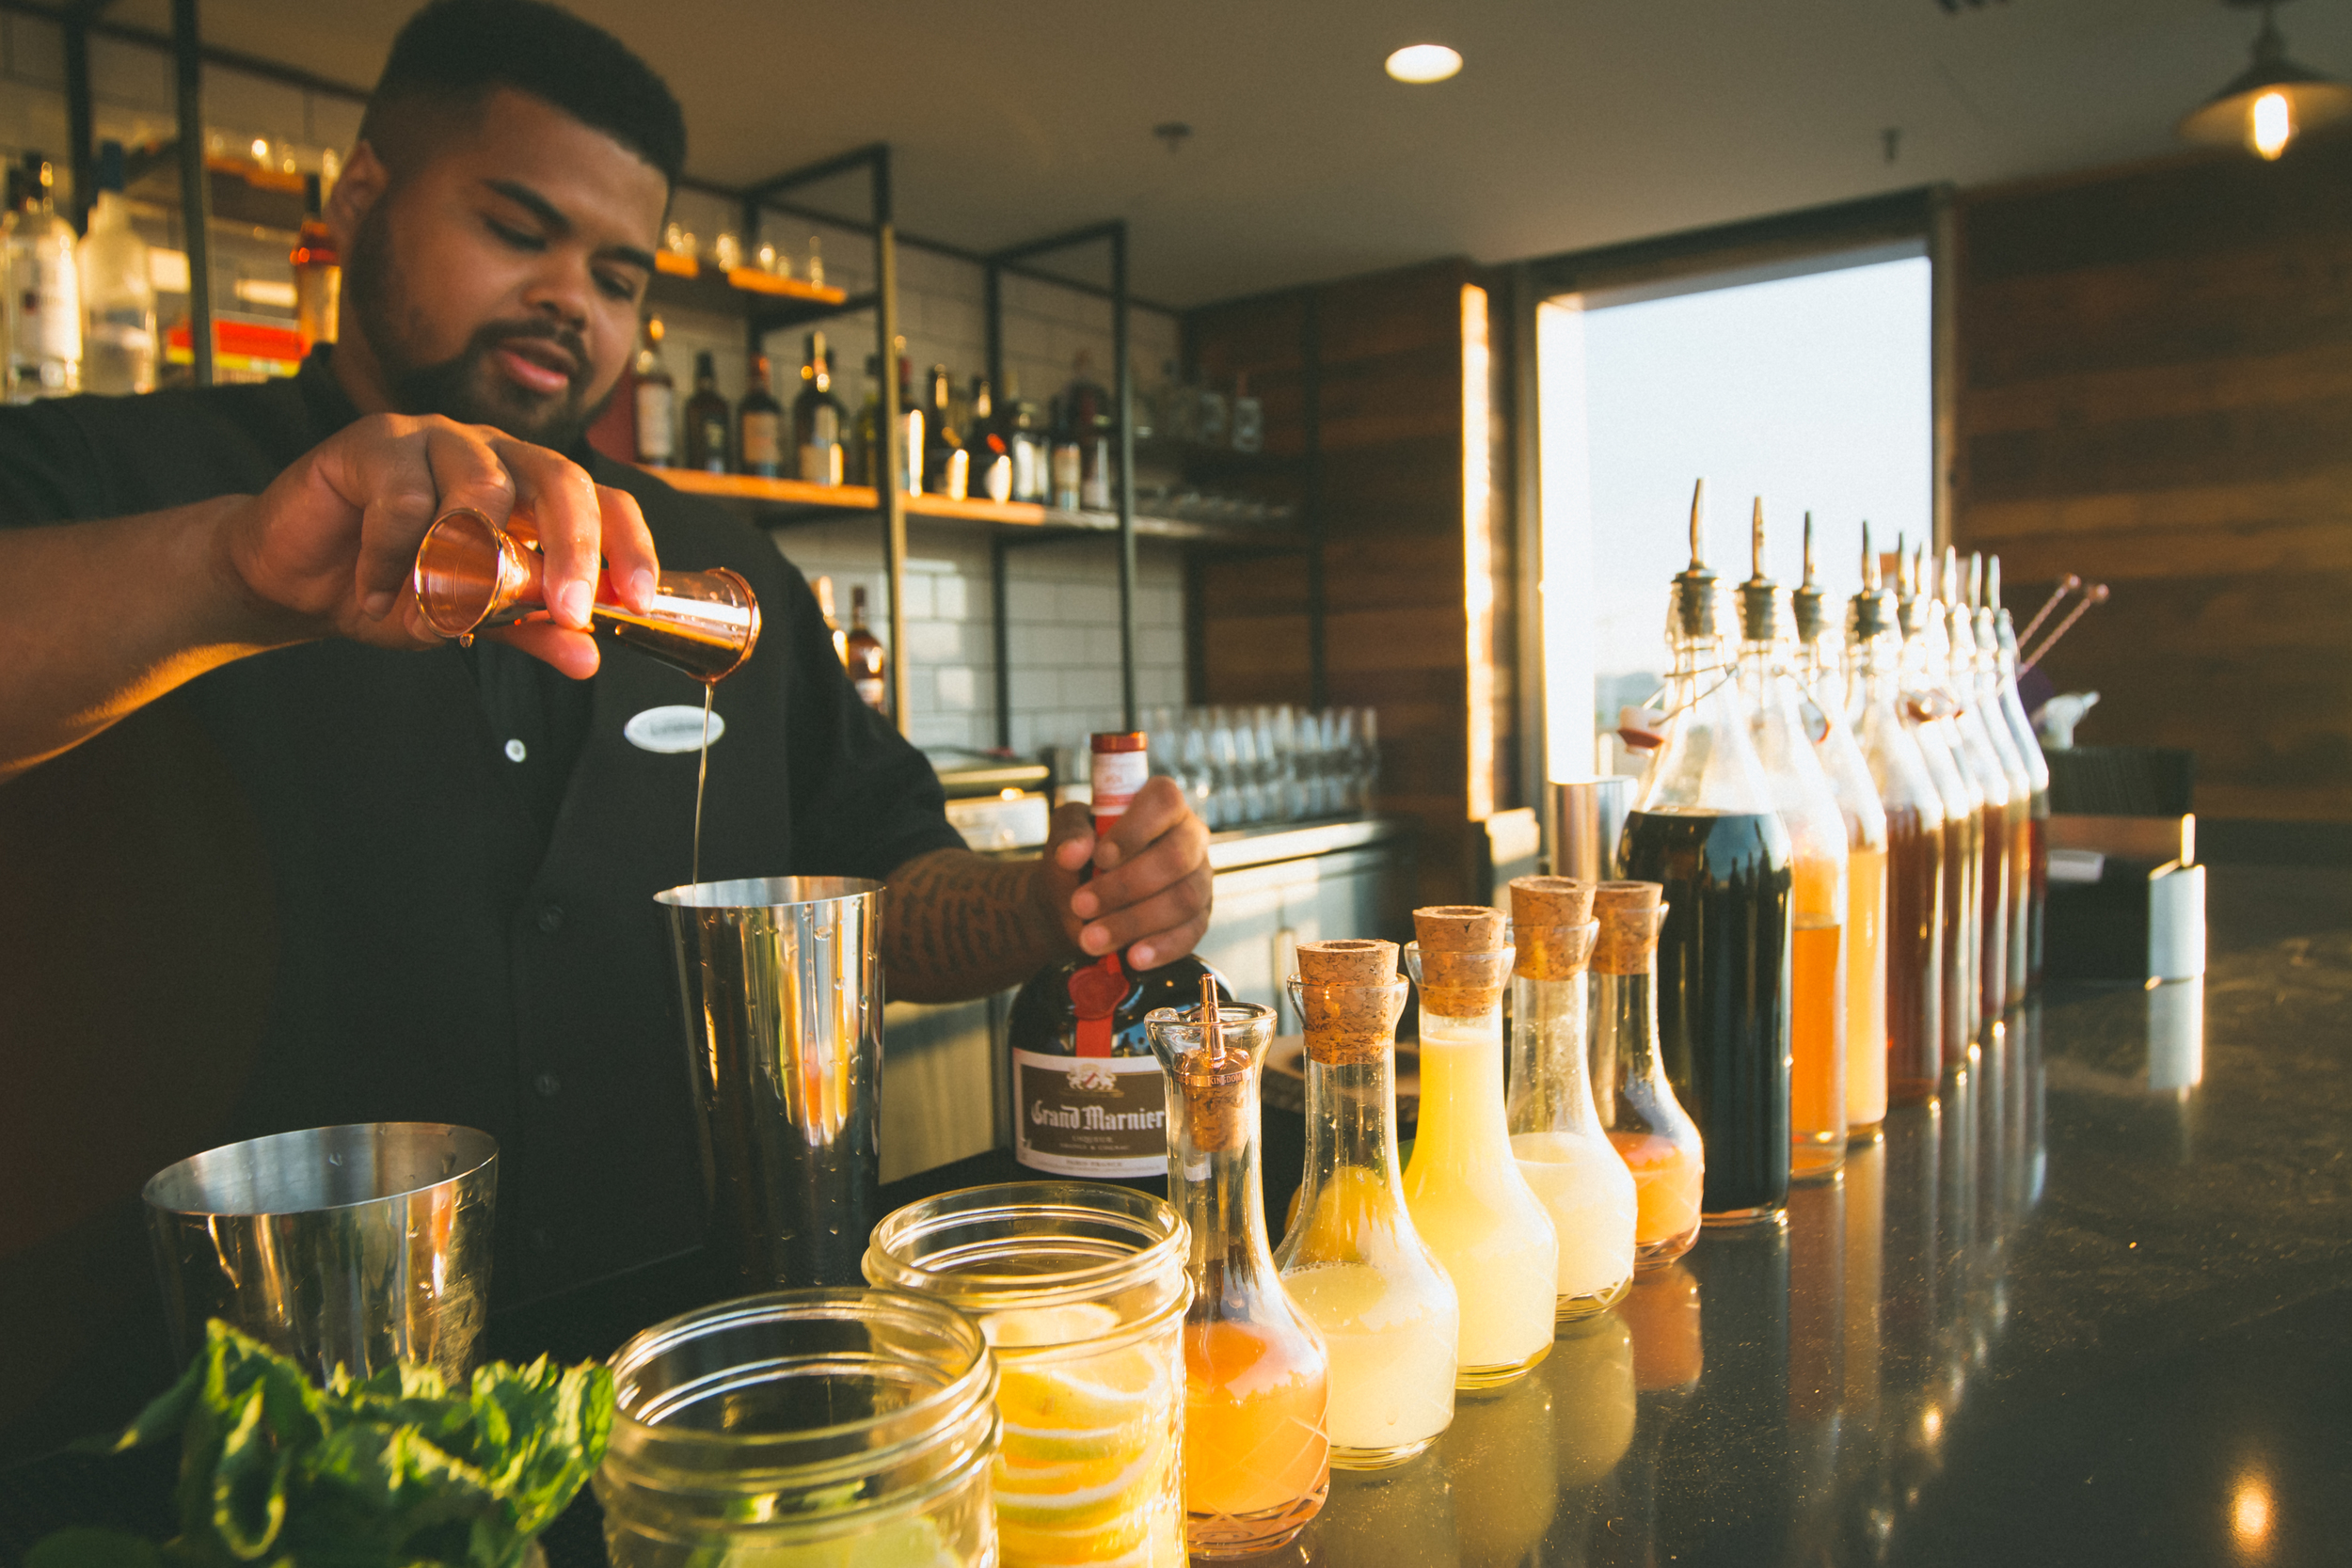 Drinks being made at citybar